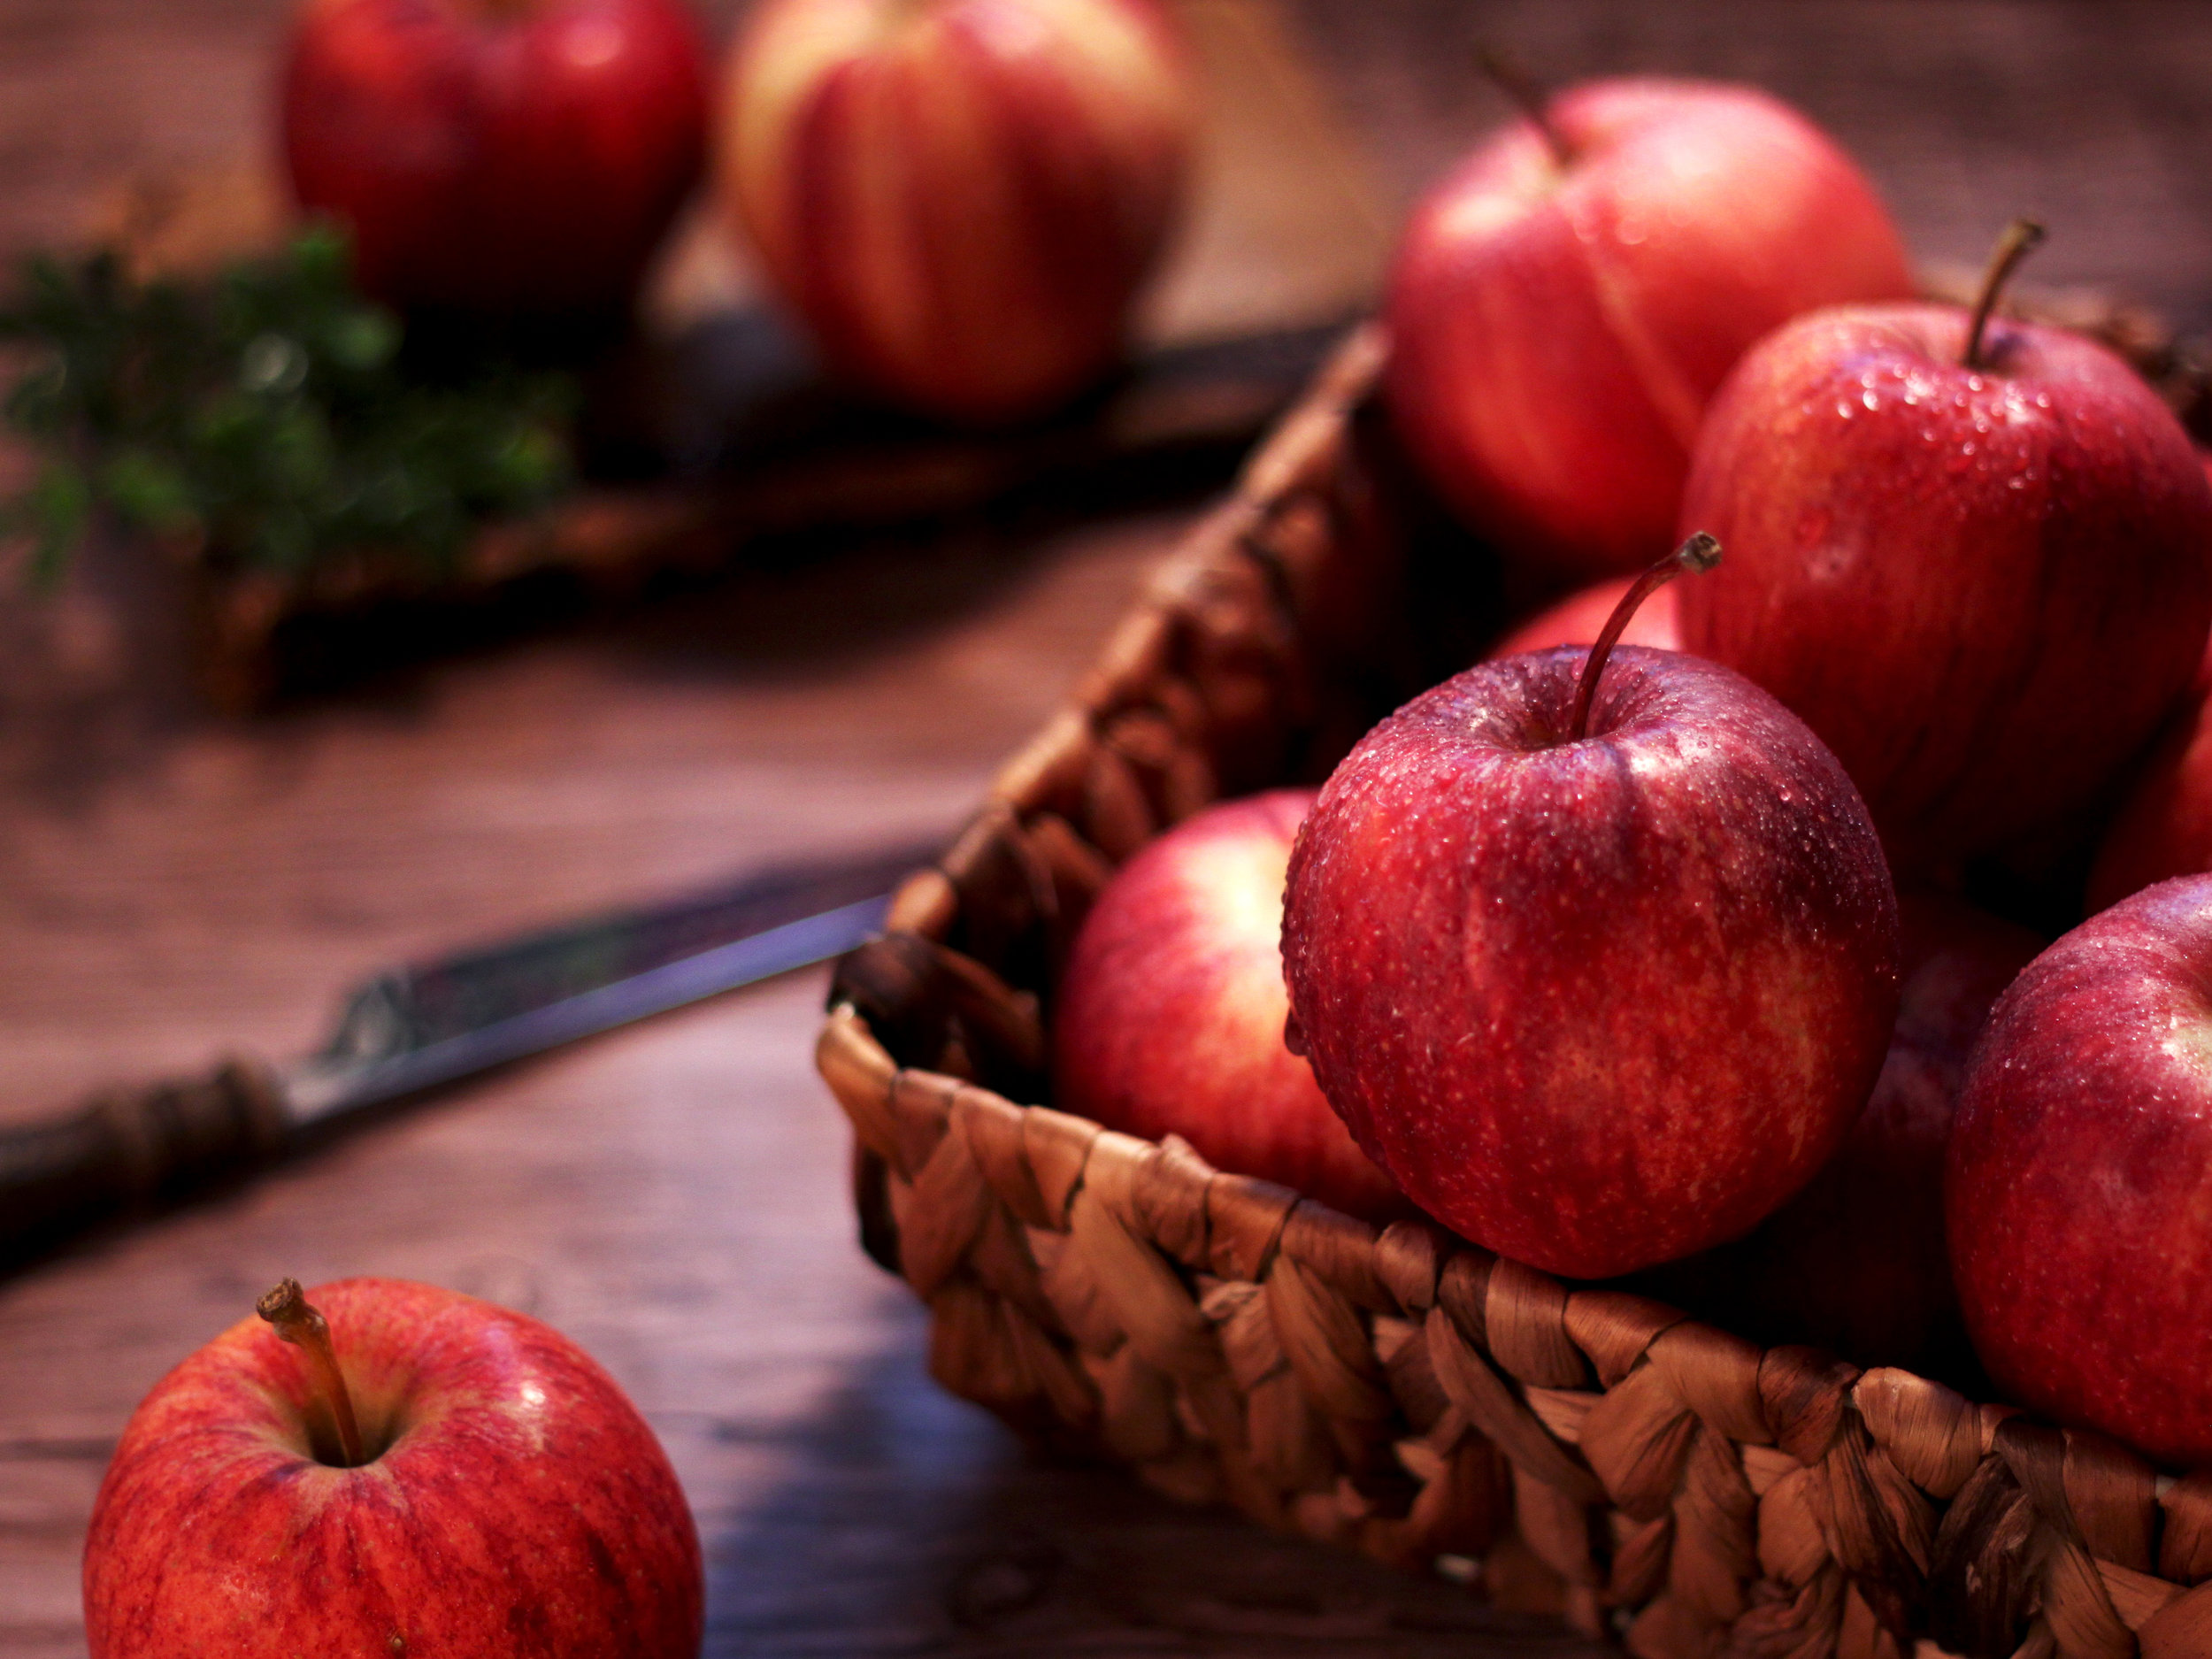 Apple Extract - Apple extract is rich in antioxidants like vitamin C and natural acids. It's also high in polyphenols and catechins like those found in green tea. Apple has many skin care benefits for oily, acneic, dull and aging skin.